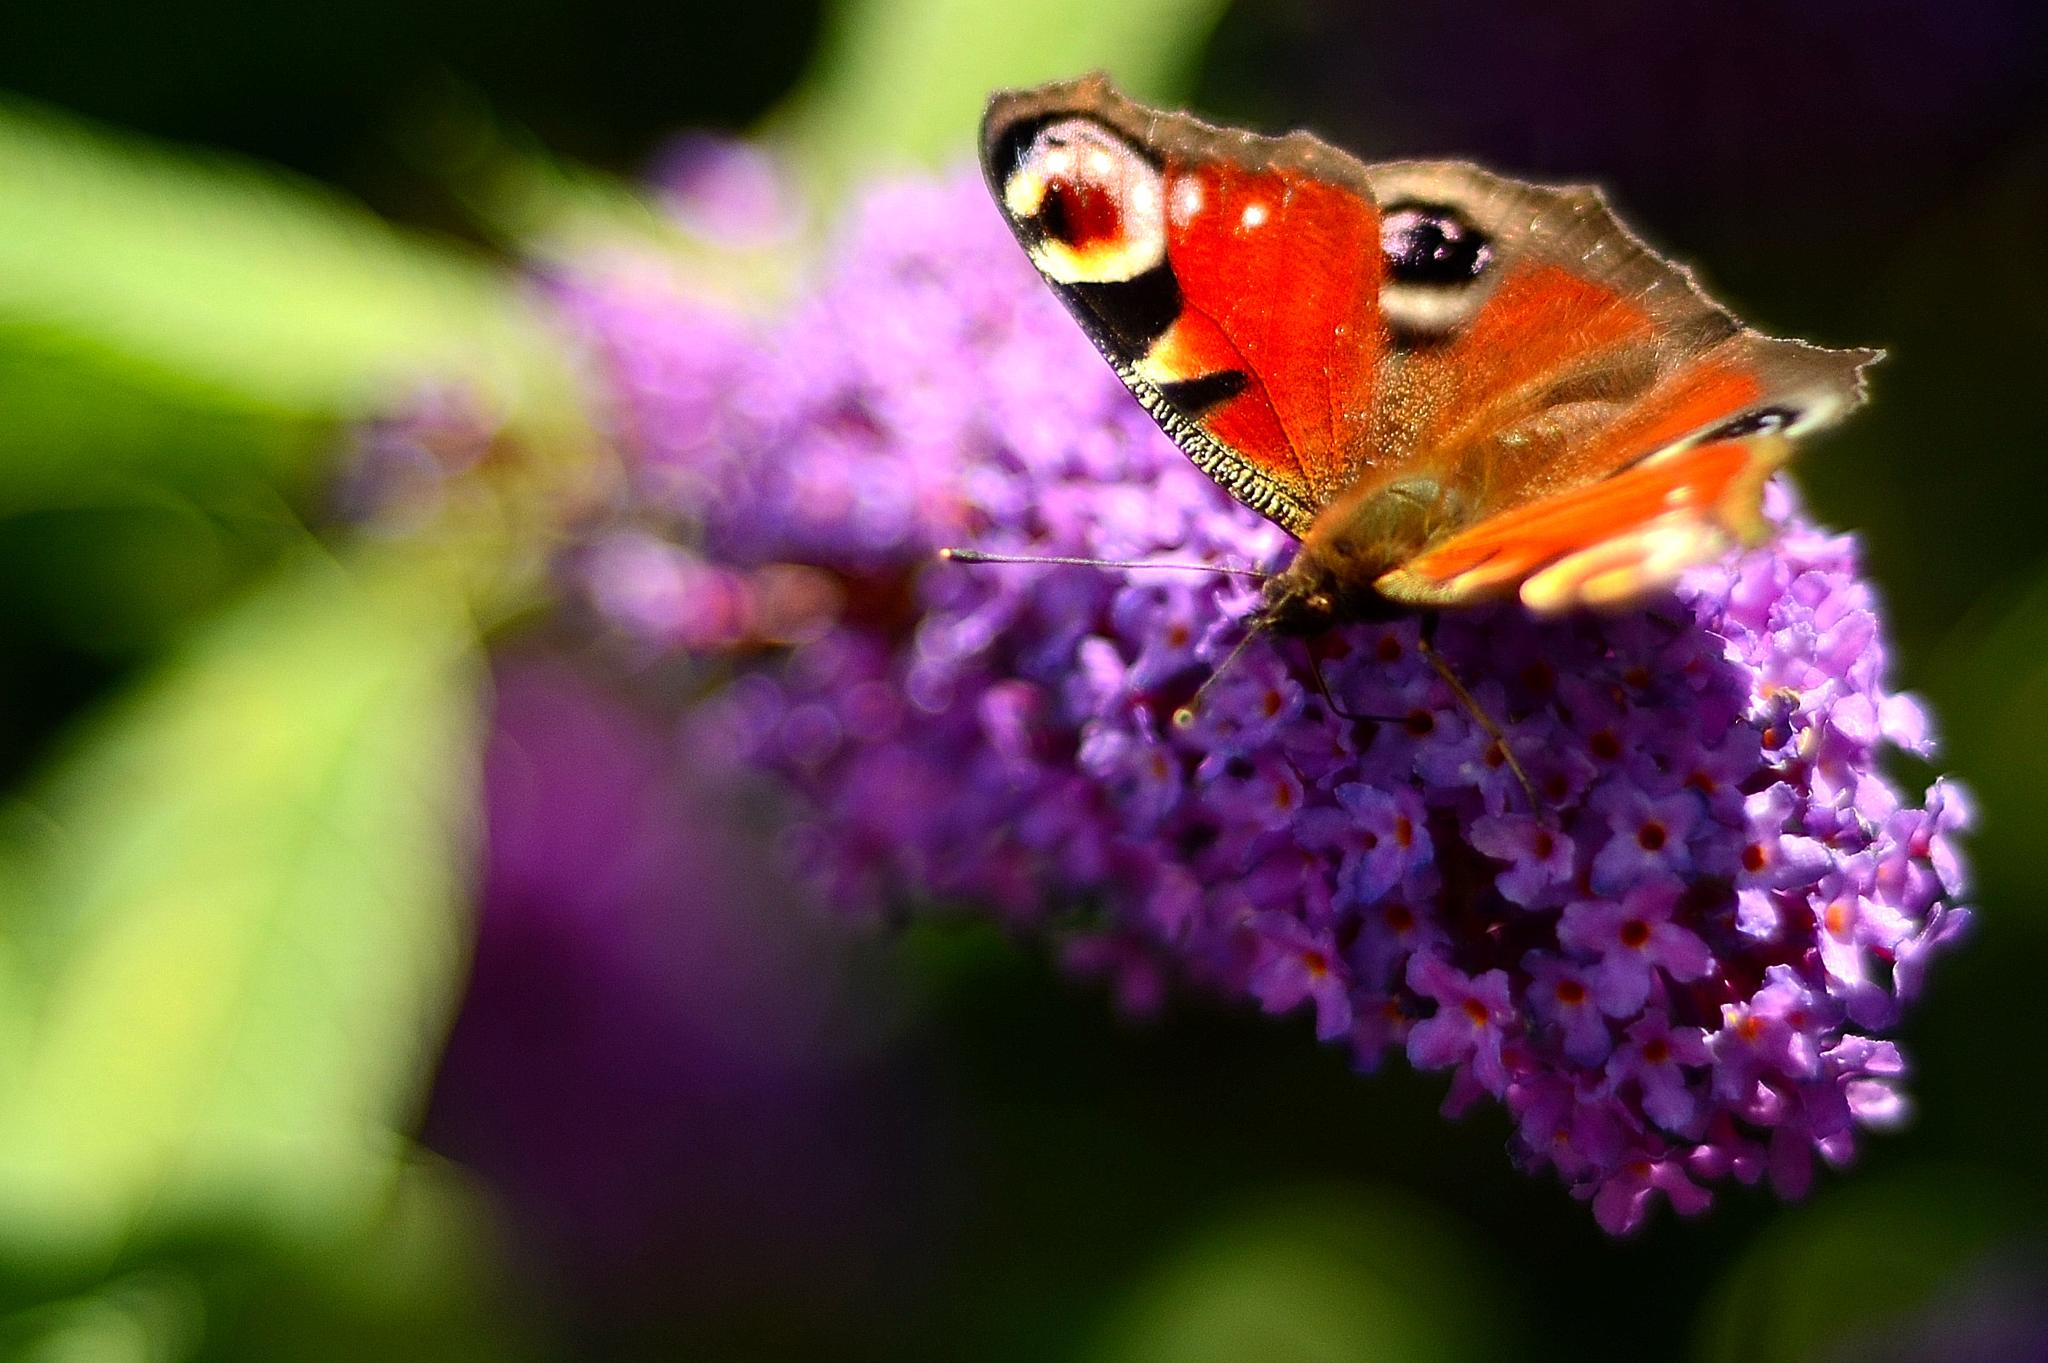 peacock butterfly by Rick.Engbers.5